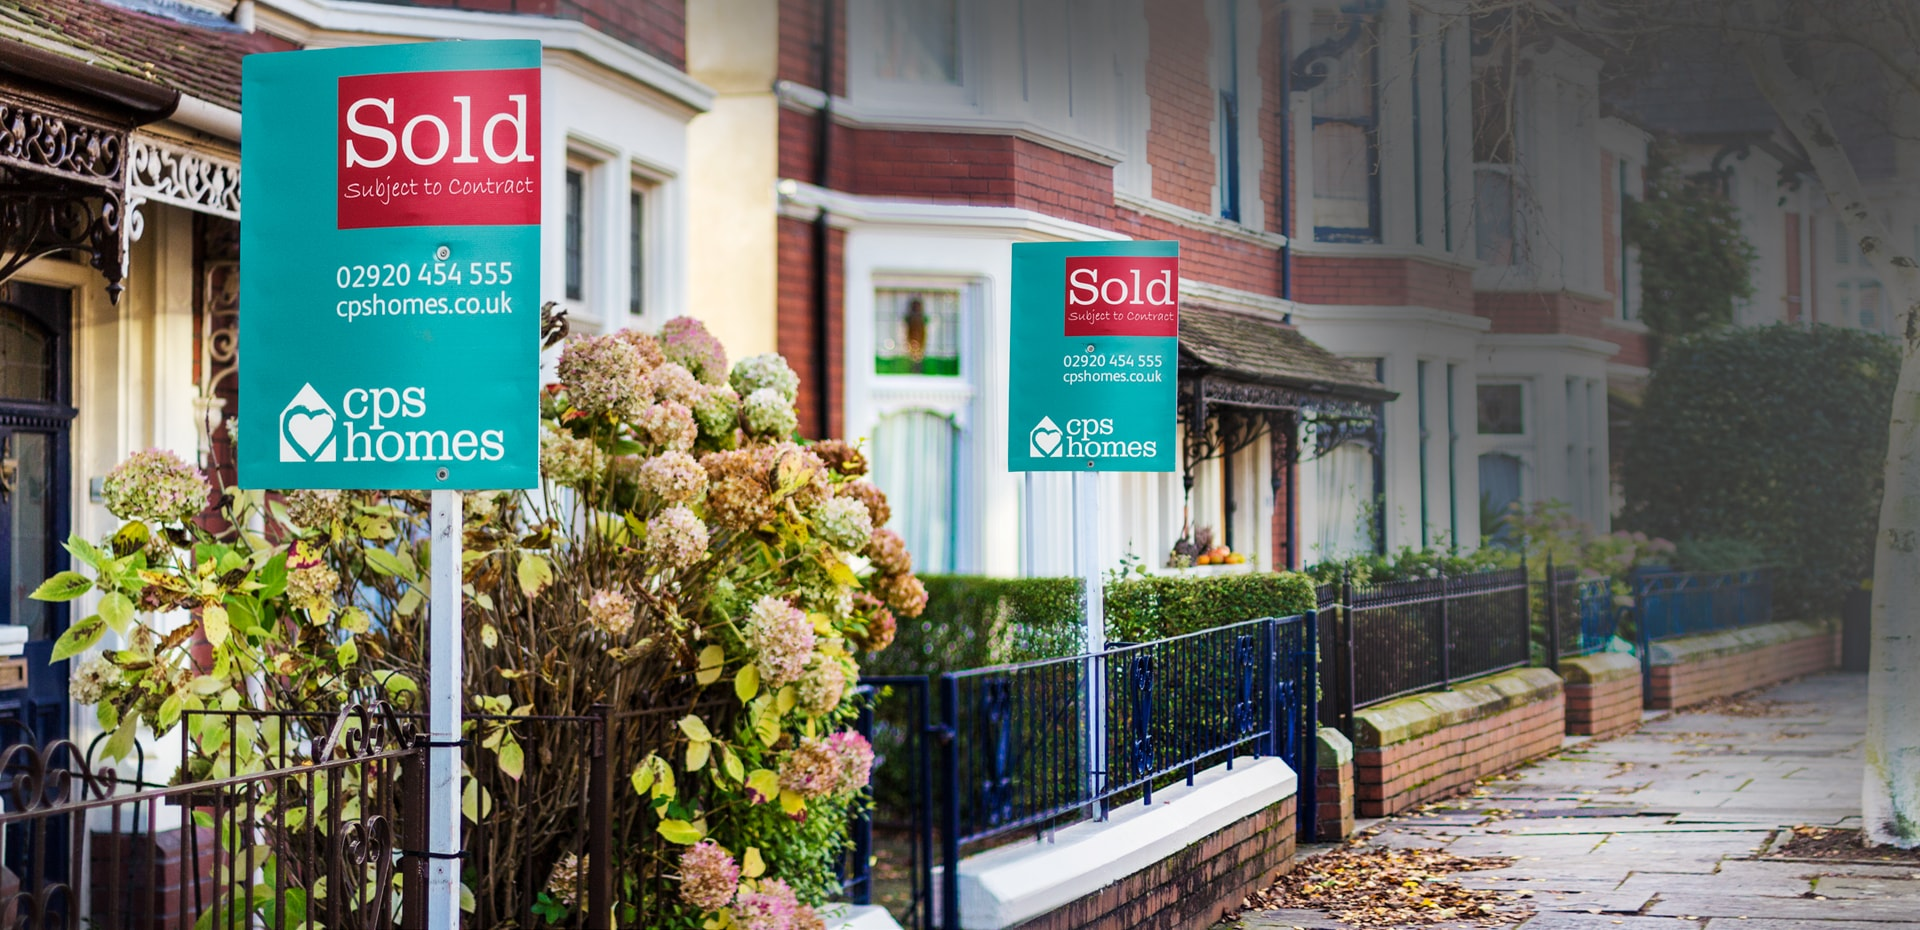 Property market remains resilient despite political uncertainty